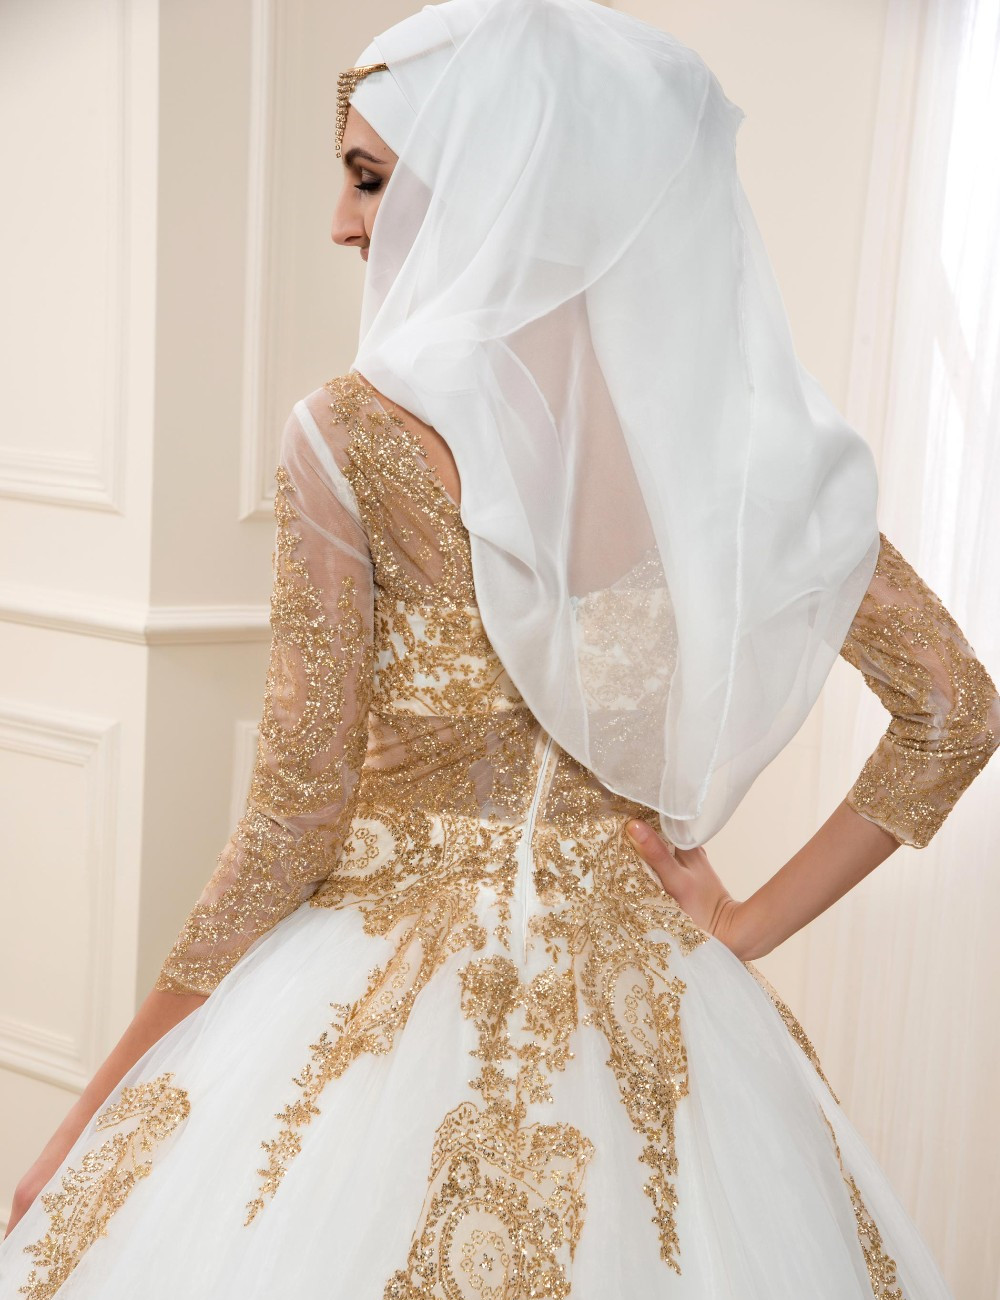 Gold Lace Muslim Wedding Dresses With Sleeves 2017 See Through Ball Gown Hijab Wedding Dress